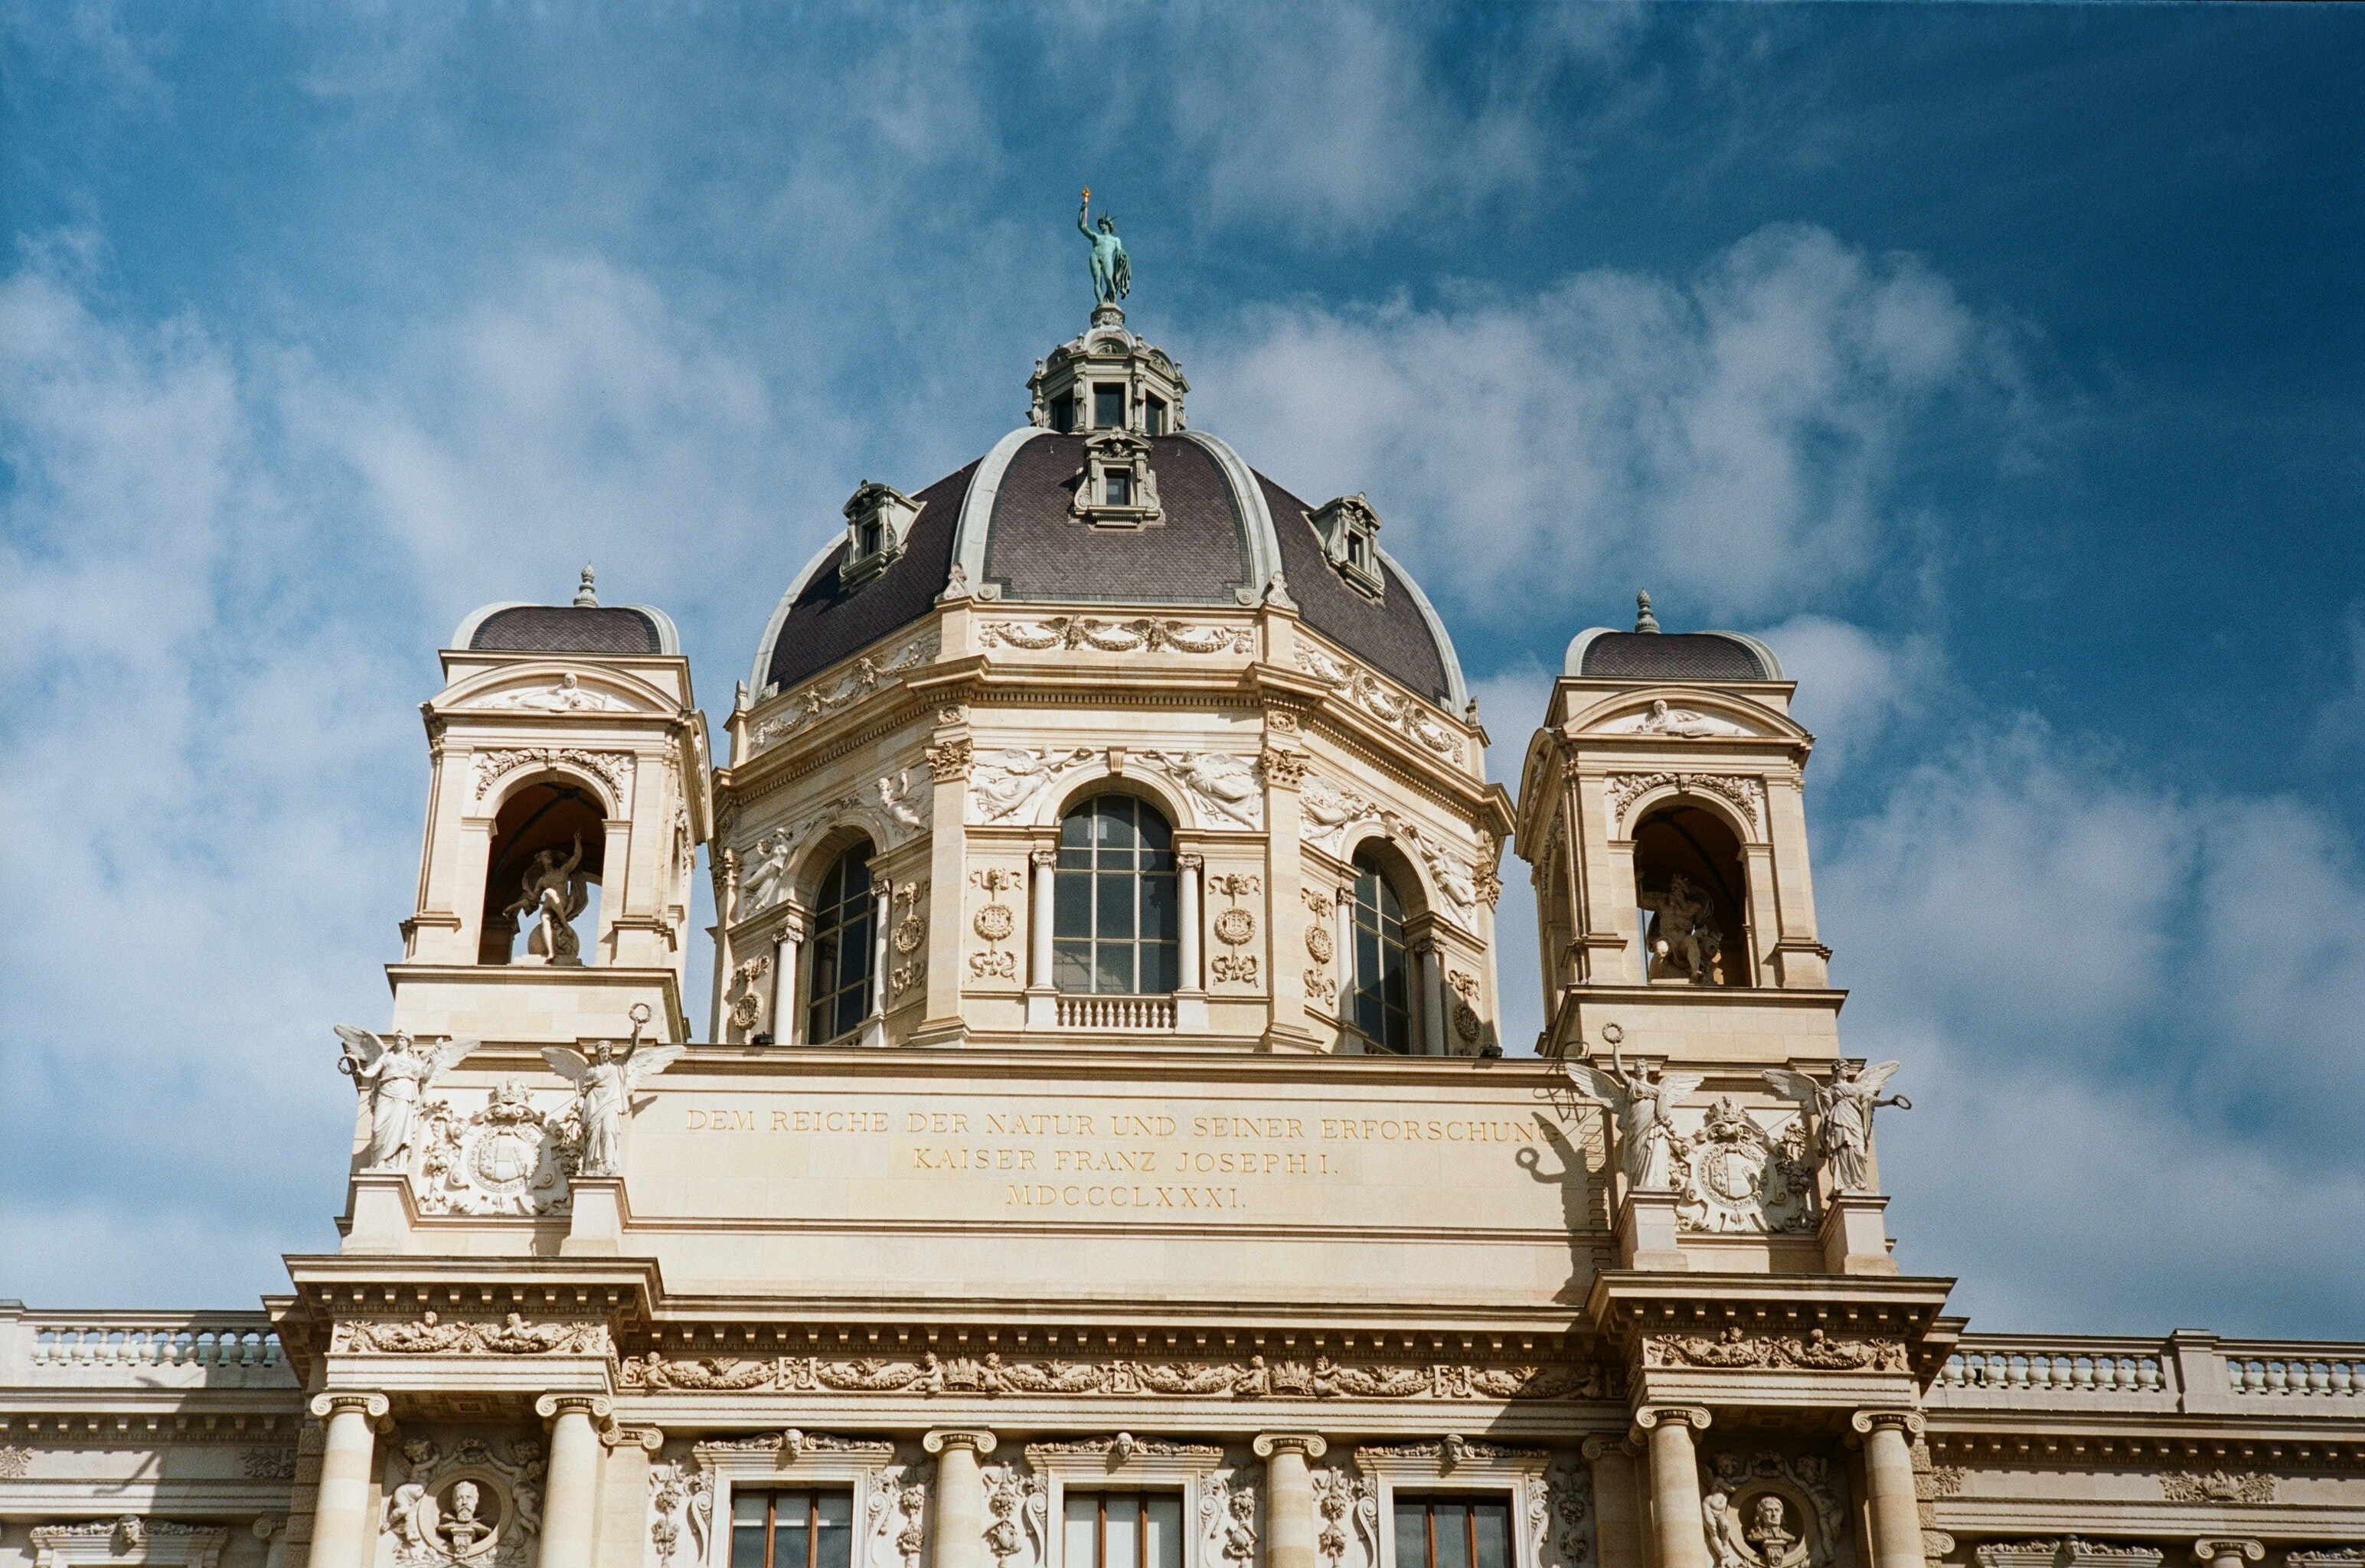 Incredible Architecture, Reasons to visit Austria